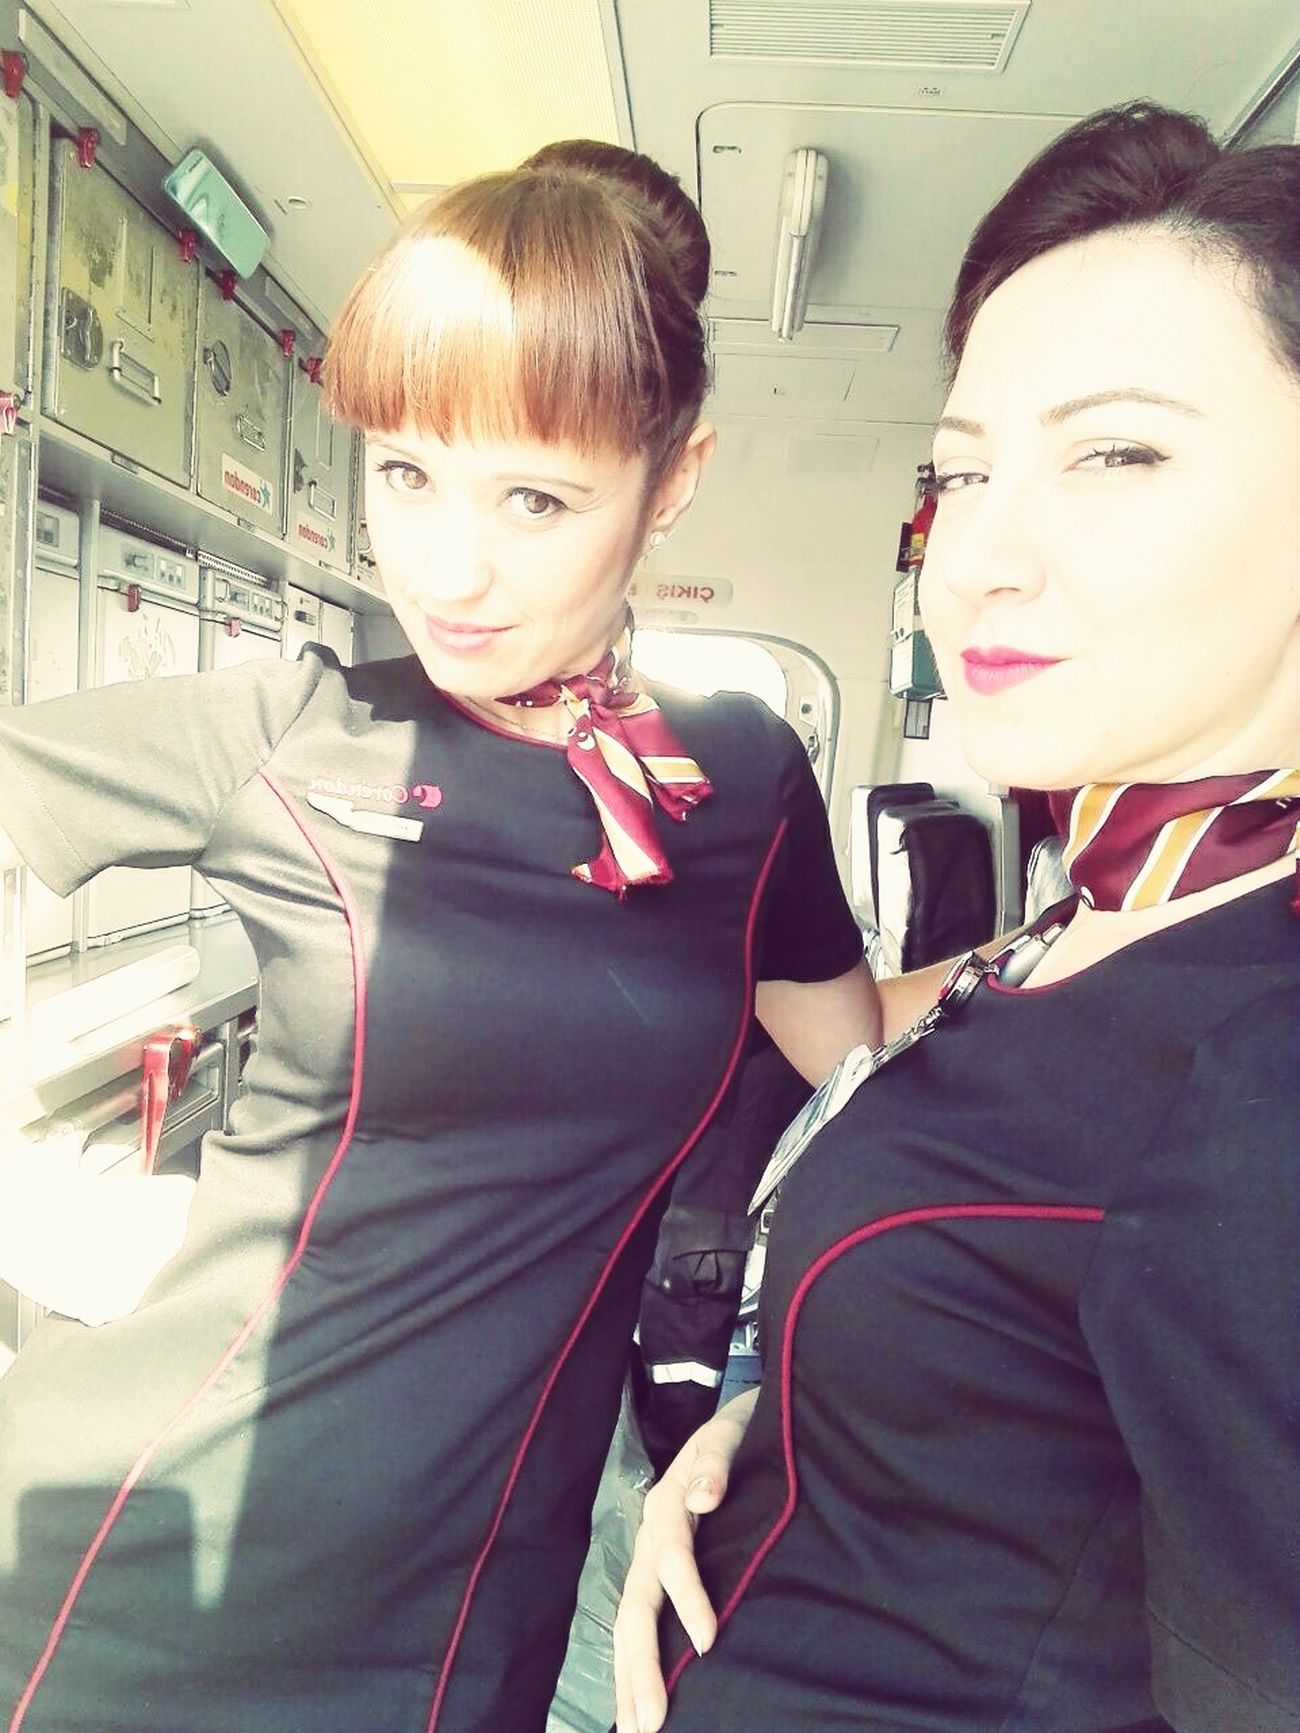 Flight ✈ FlightTeam Cabin Crew Cabincrew Airport Airplane Lifeofcabincrew Instaplane #aircraft #cabincrew #airport